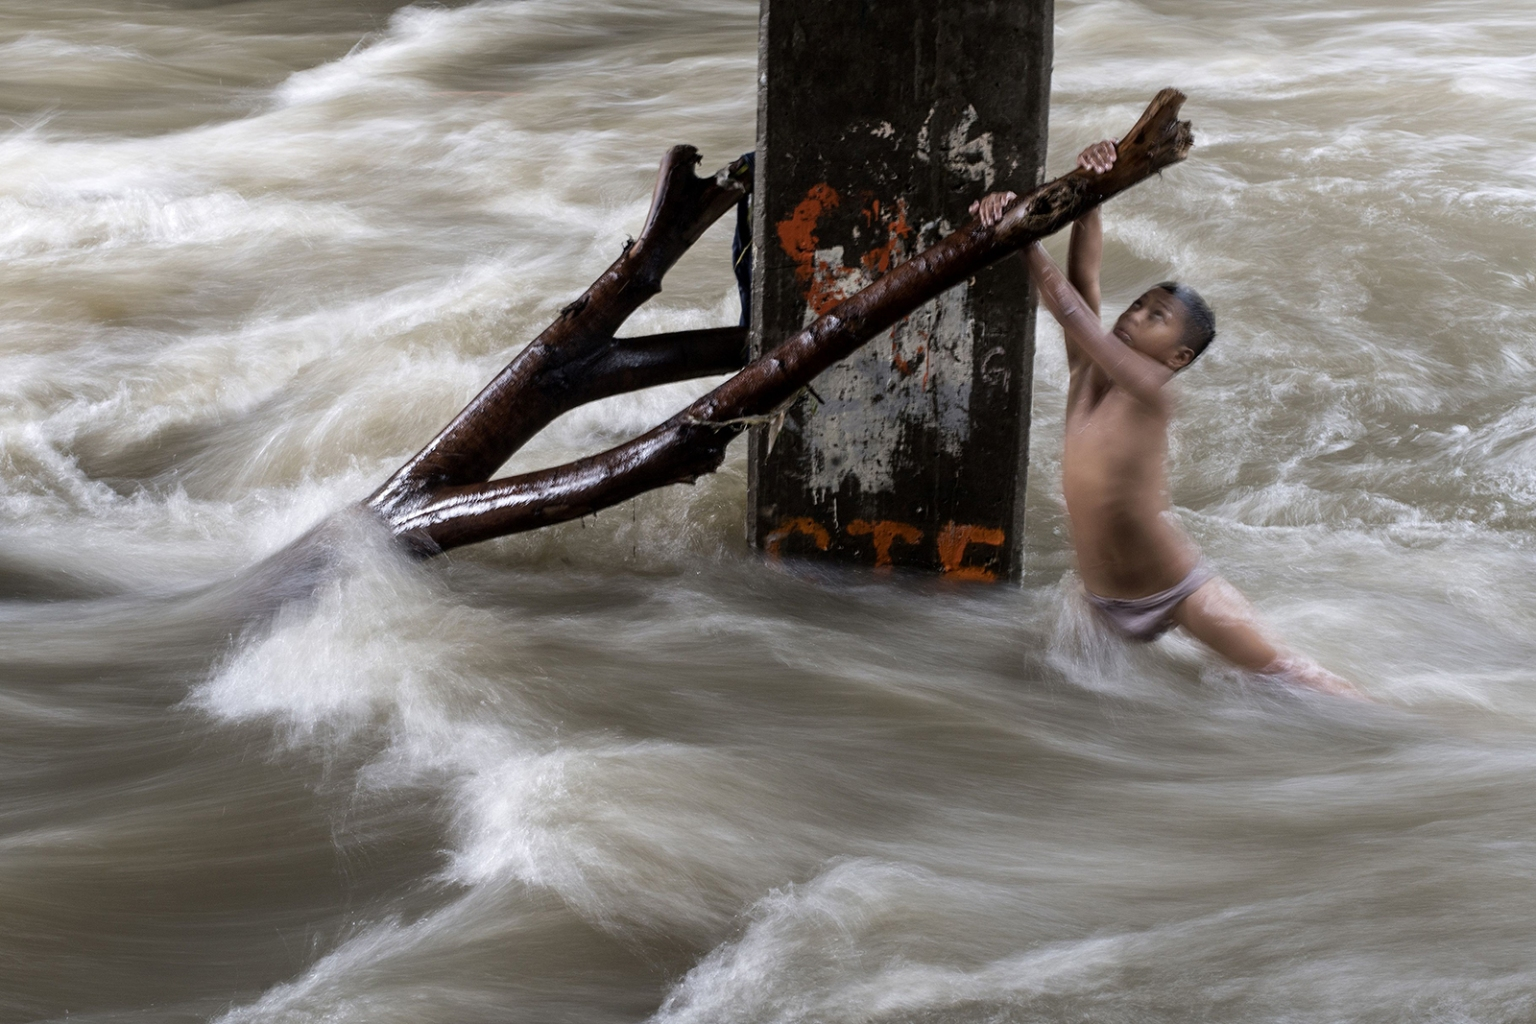 A boy holds a partially submerged branch as he plays under a bridge in a swollen river after heavy rains in Manila on June 11. NOEL CELIS/AFP/Getty Images